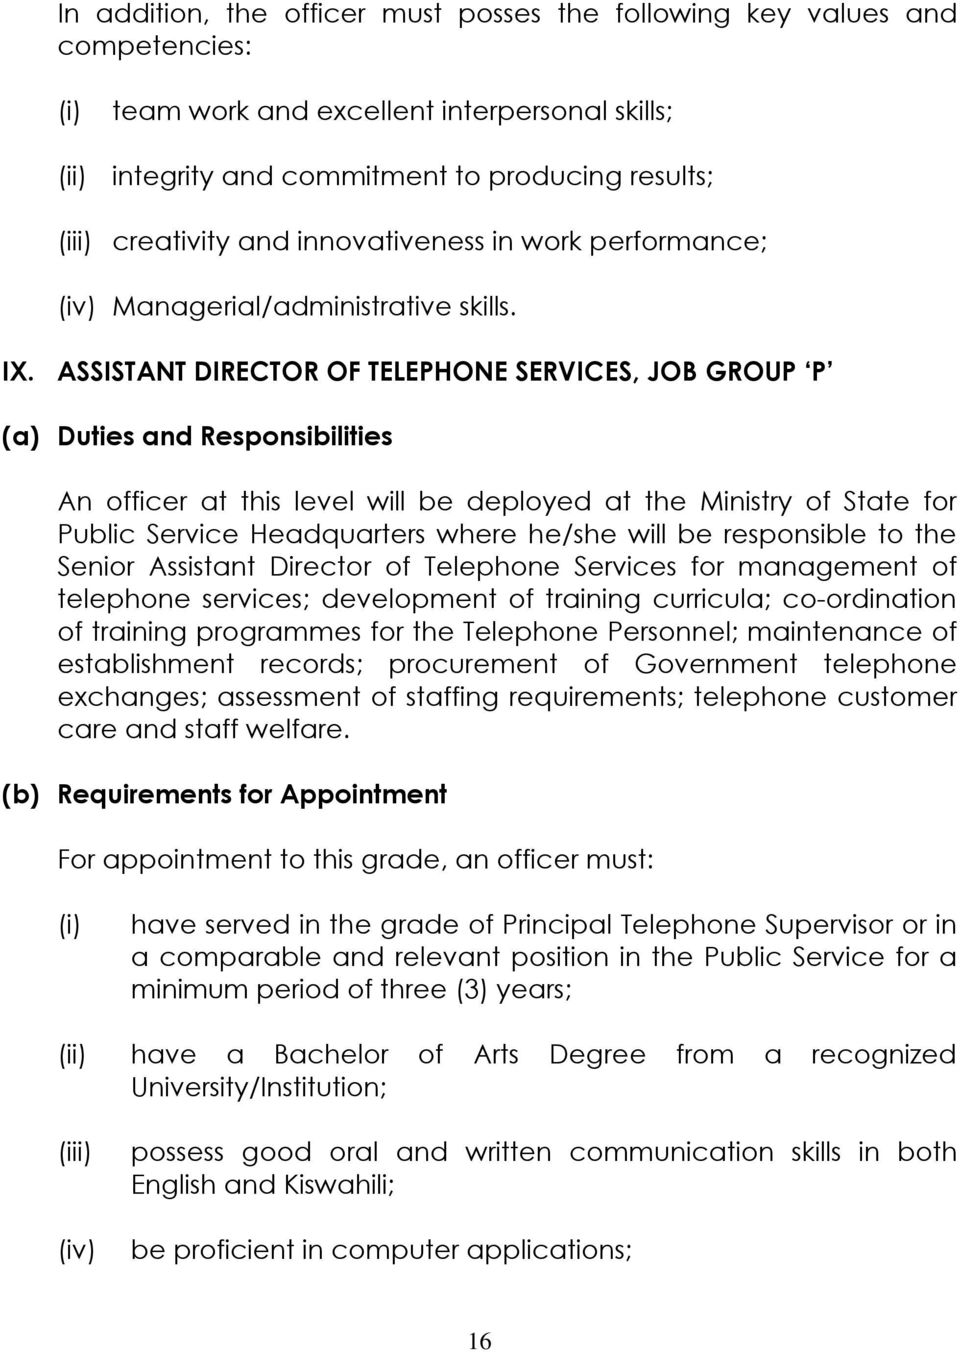 ASSISTANT DIRECTOR OF TELEPHONE SERVICES, JOB GROUP P (a) Duties and Responsibilities An officer at this level will be deployed at the Ministry of State for Public Service Headquarters where he/she